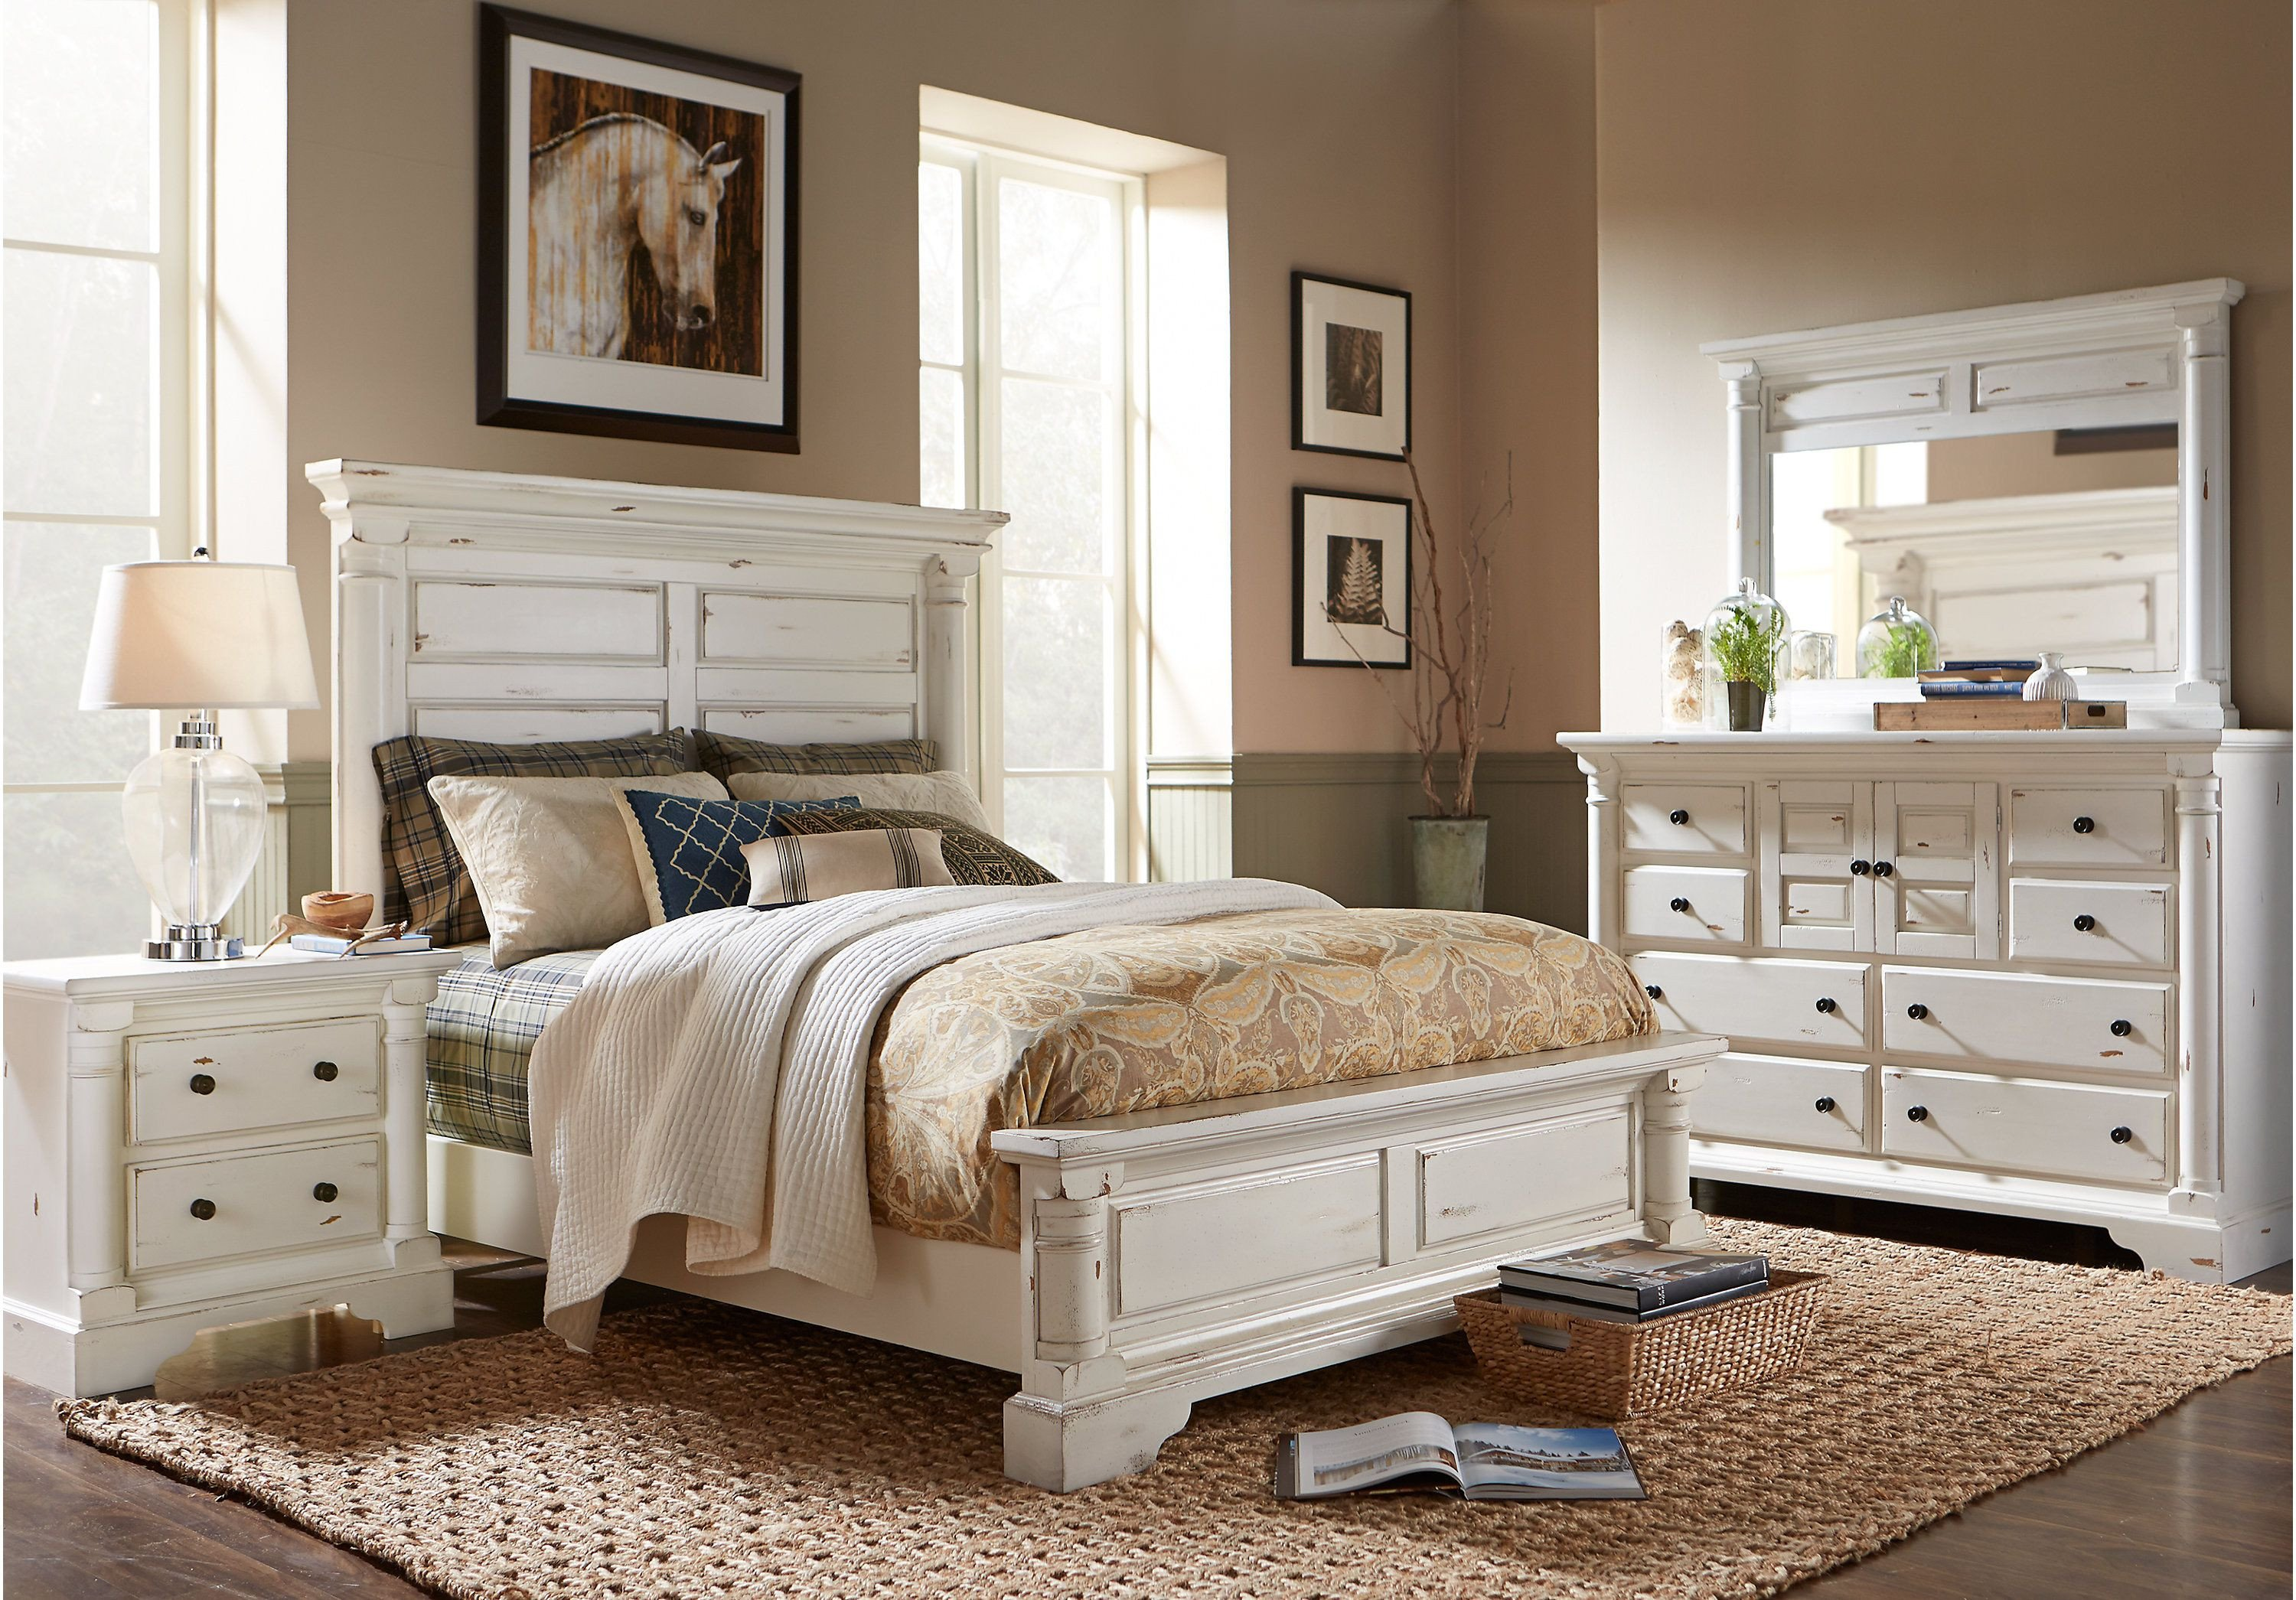 7 Piece Bedroom Set King Best Of Claymore Park F White 7 Pc King Panel Bedroom